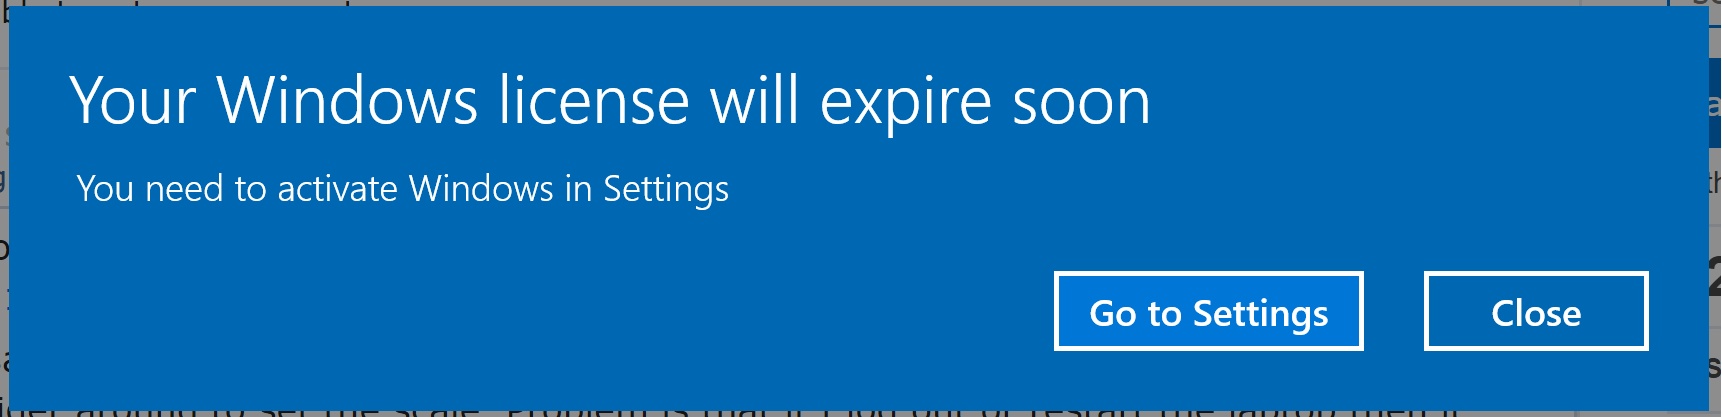 windows-licence-expire-soon-windows-10